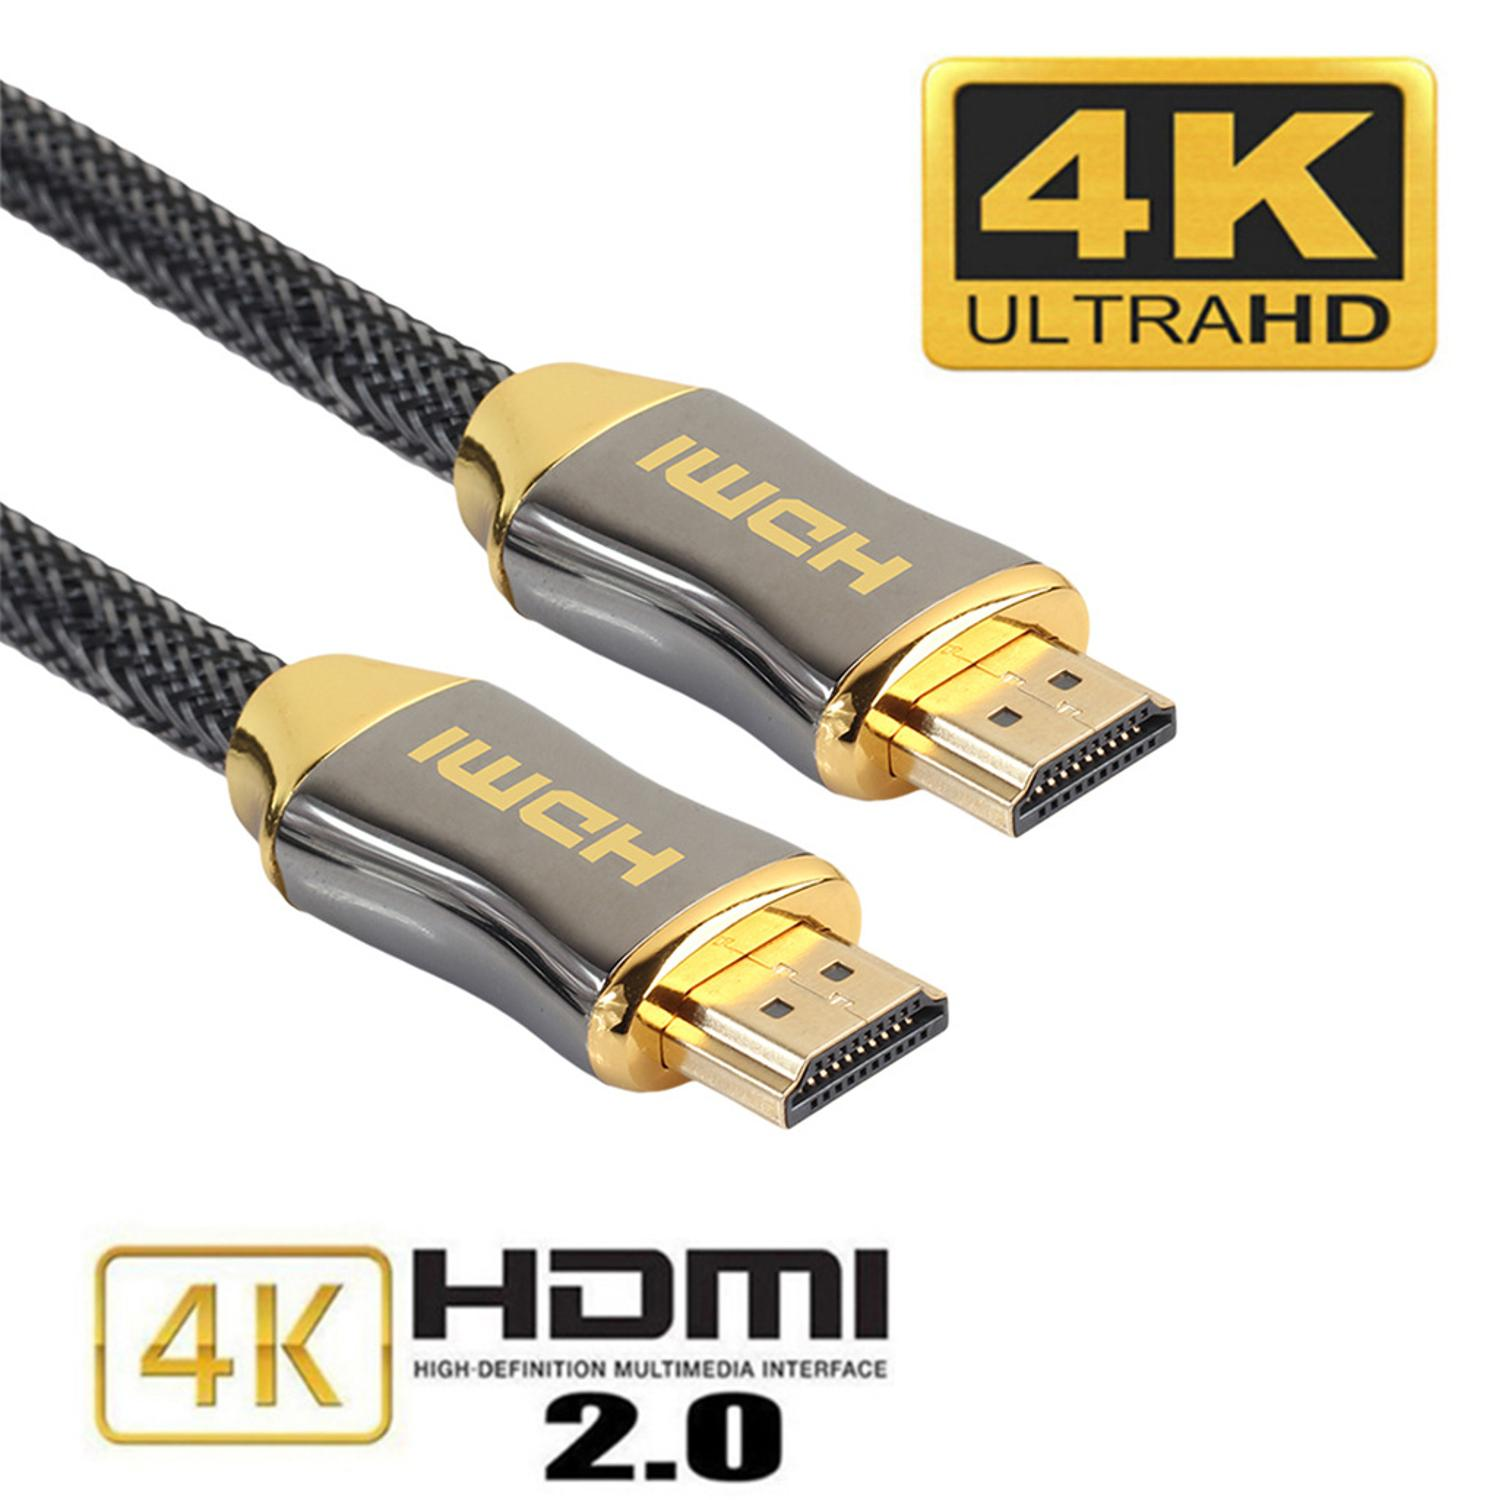 1M 2M 3M 5M 10M 15M 4K 60Hz HDMI To HDMI Cable High Speed 2.0 Golden Plated Connection Cable Cord For UHD FHD 3D Xbox PS3 PS4 TV(China)